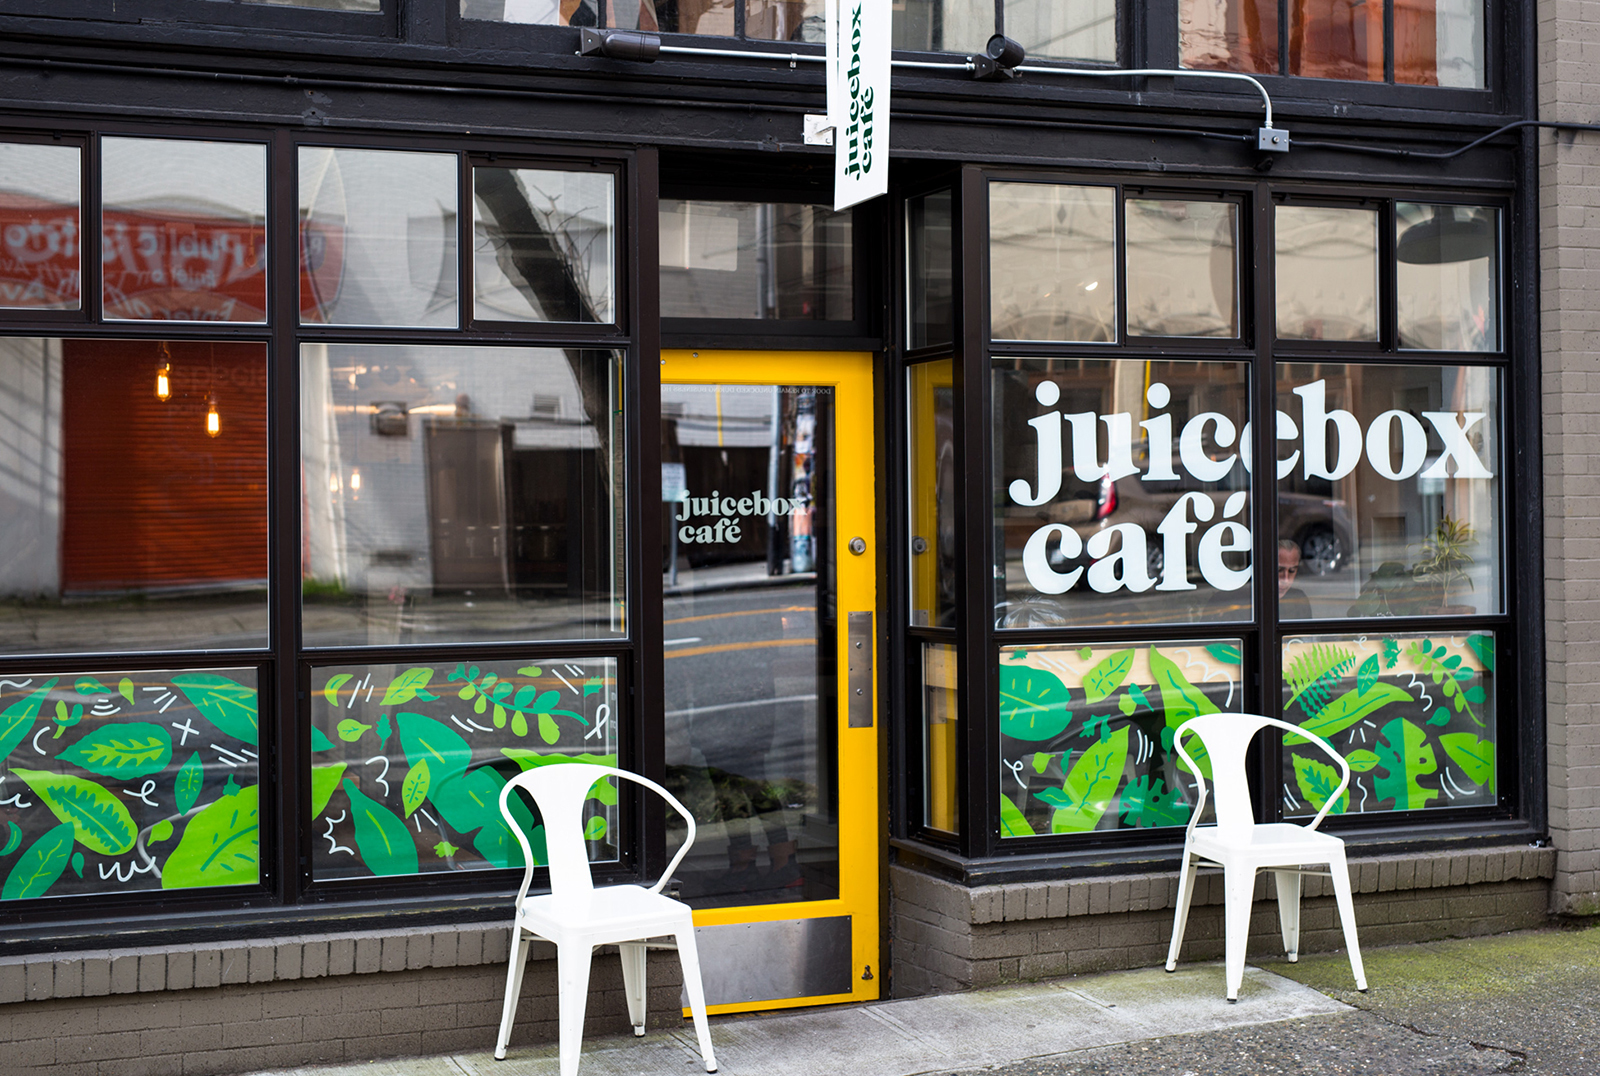 Juicebox Cafe exterior windows mural and hand lettering